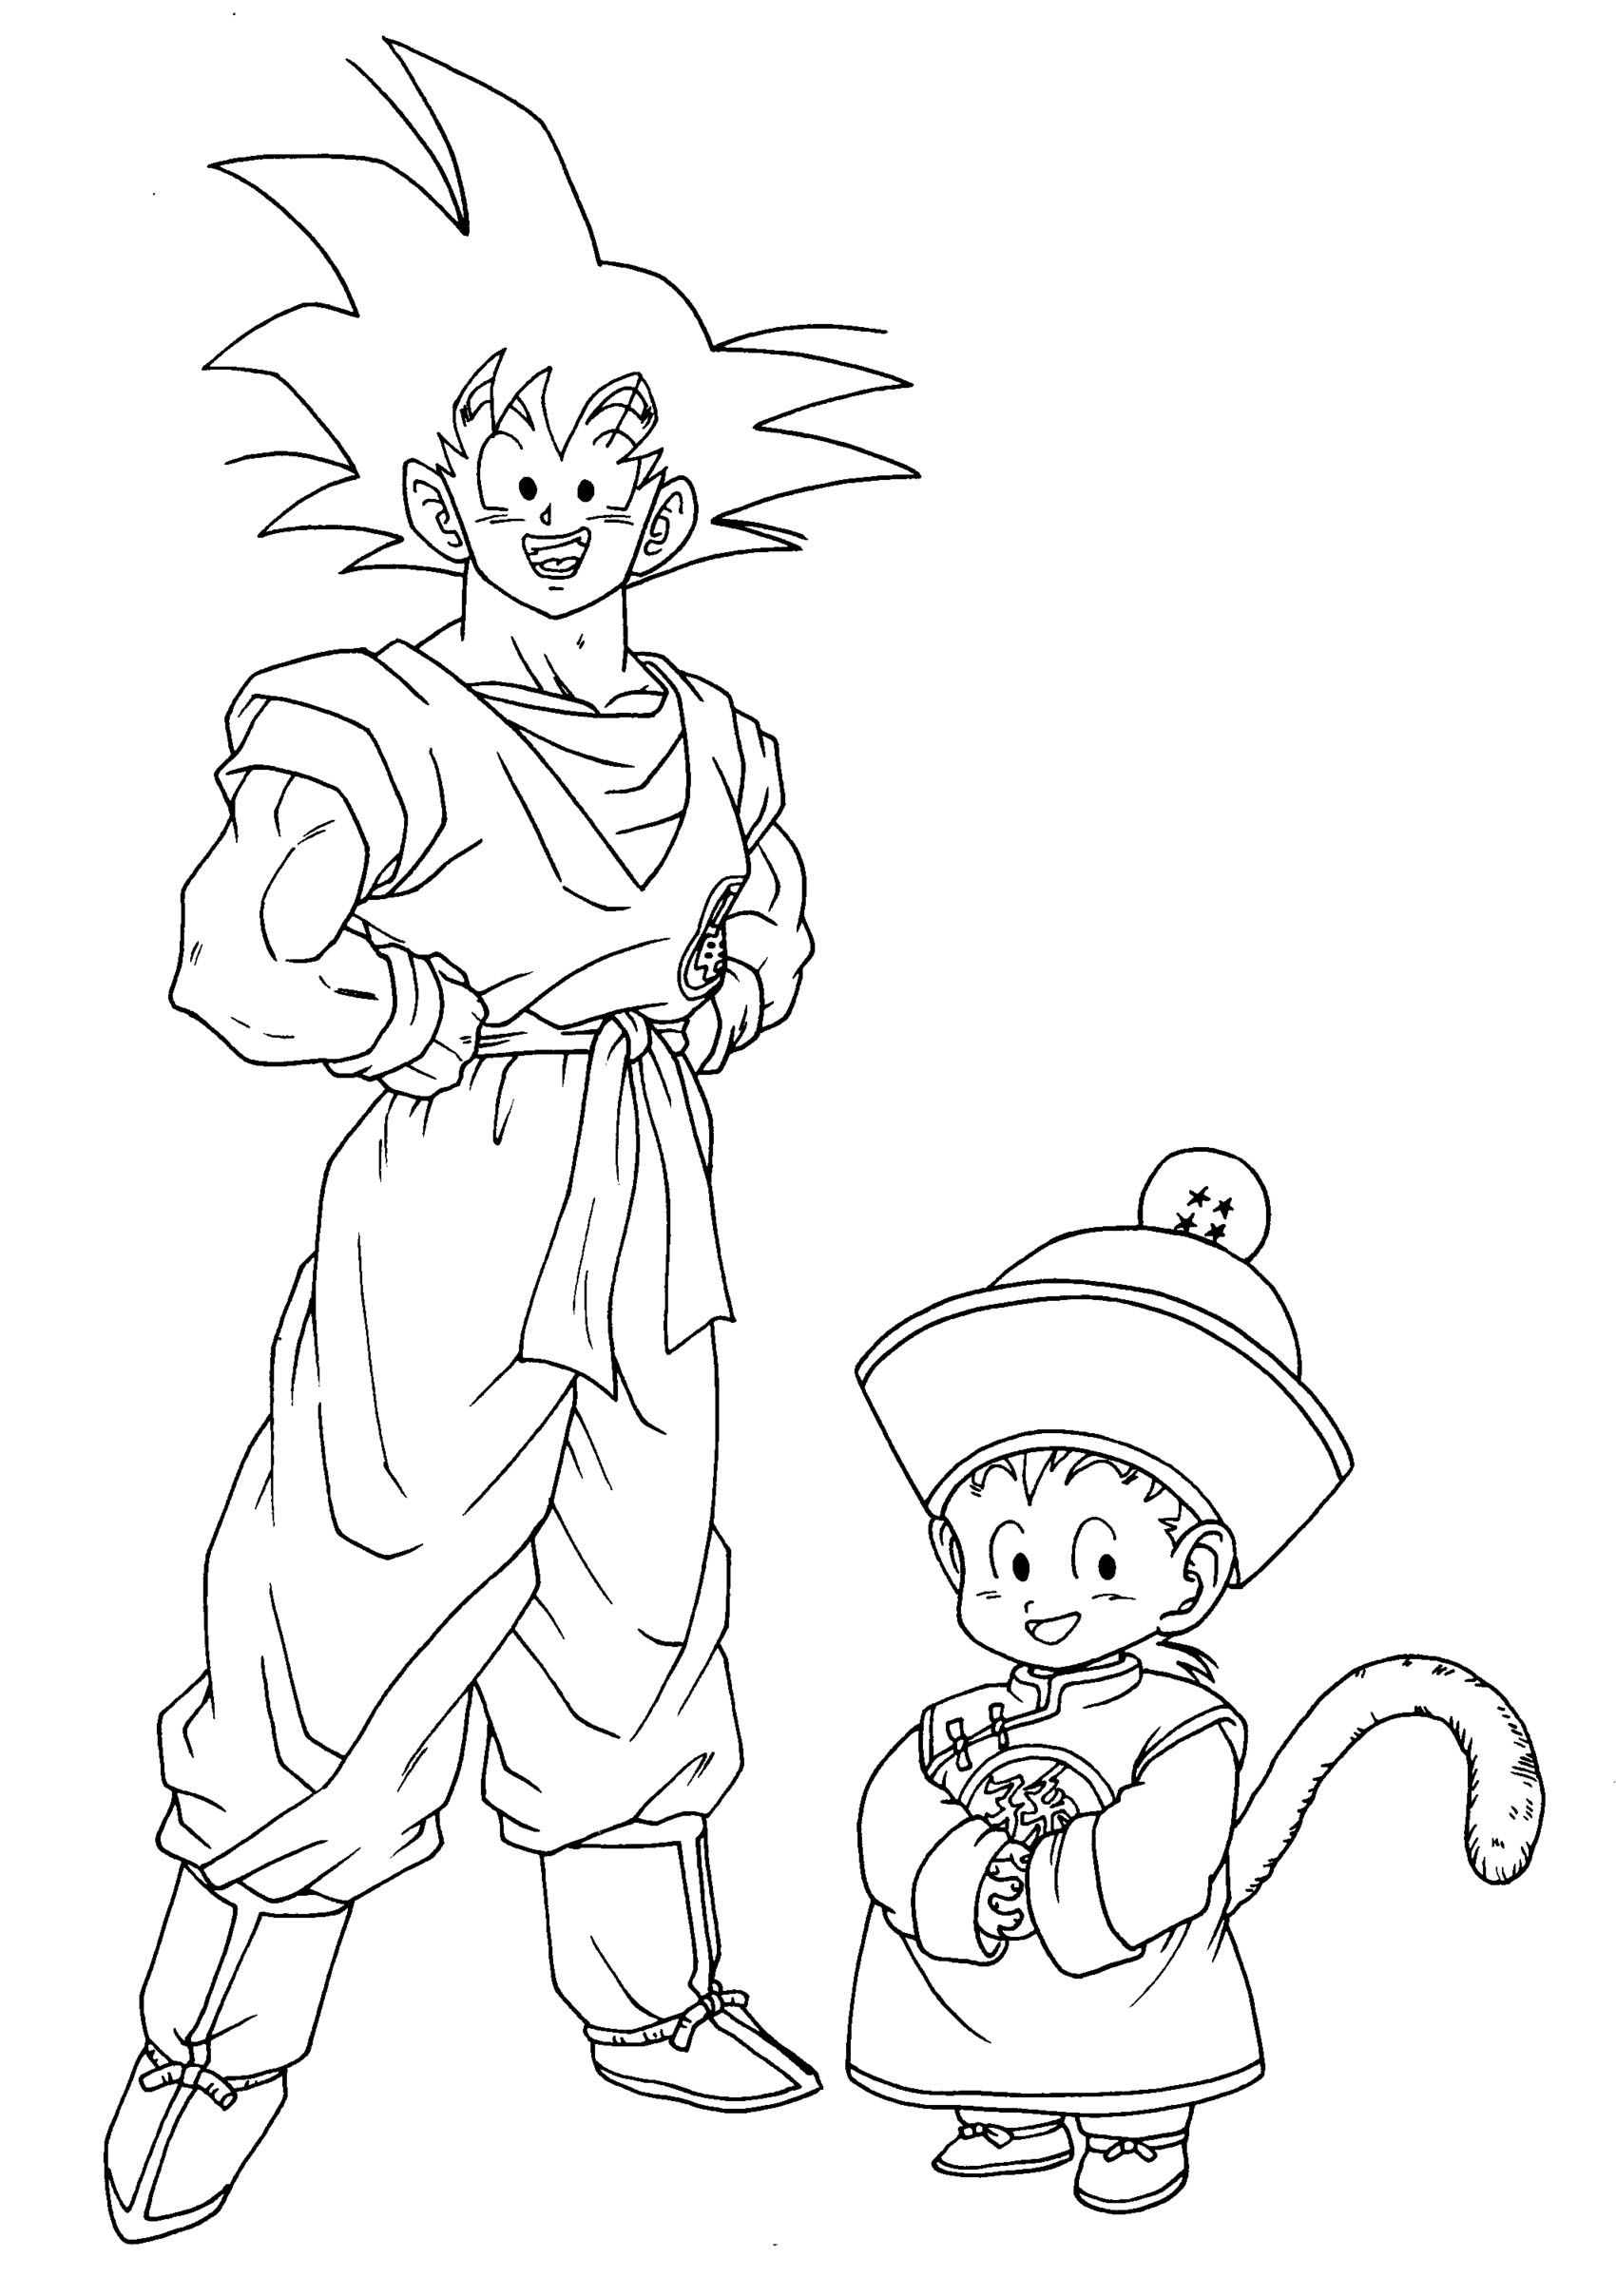 Coloriages dragon ball z 11 coloriage dragon ball z - Dessin de dragon ball za imprimer ...